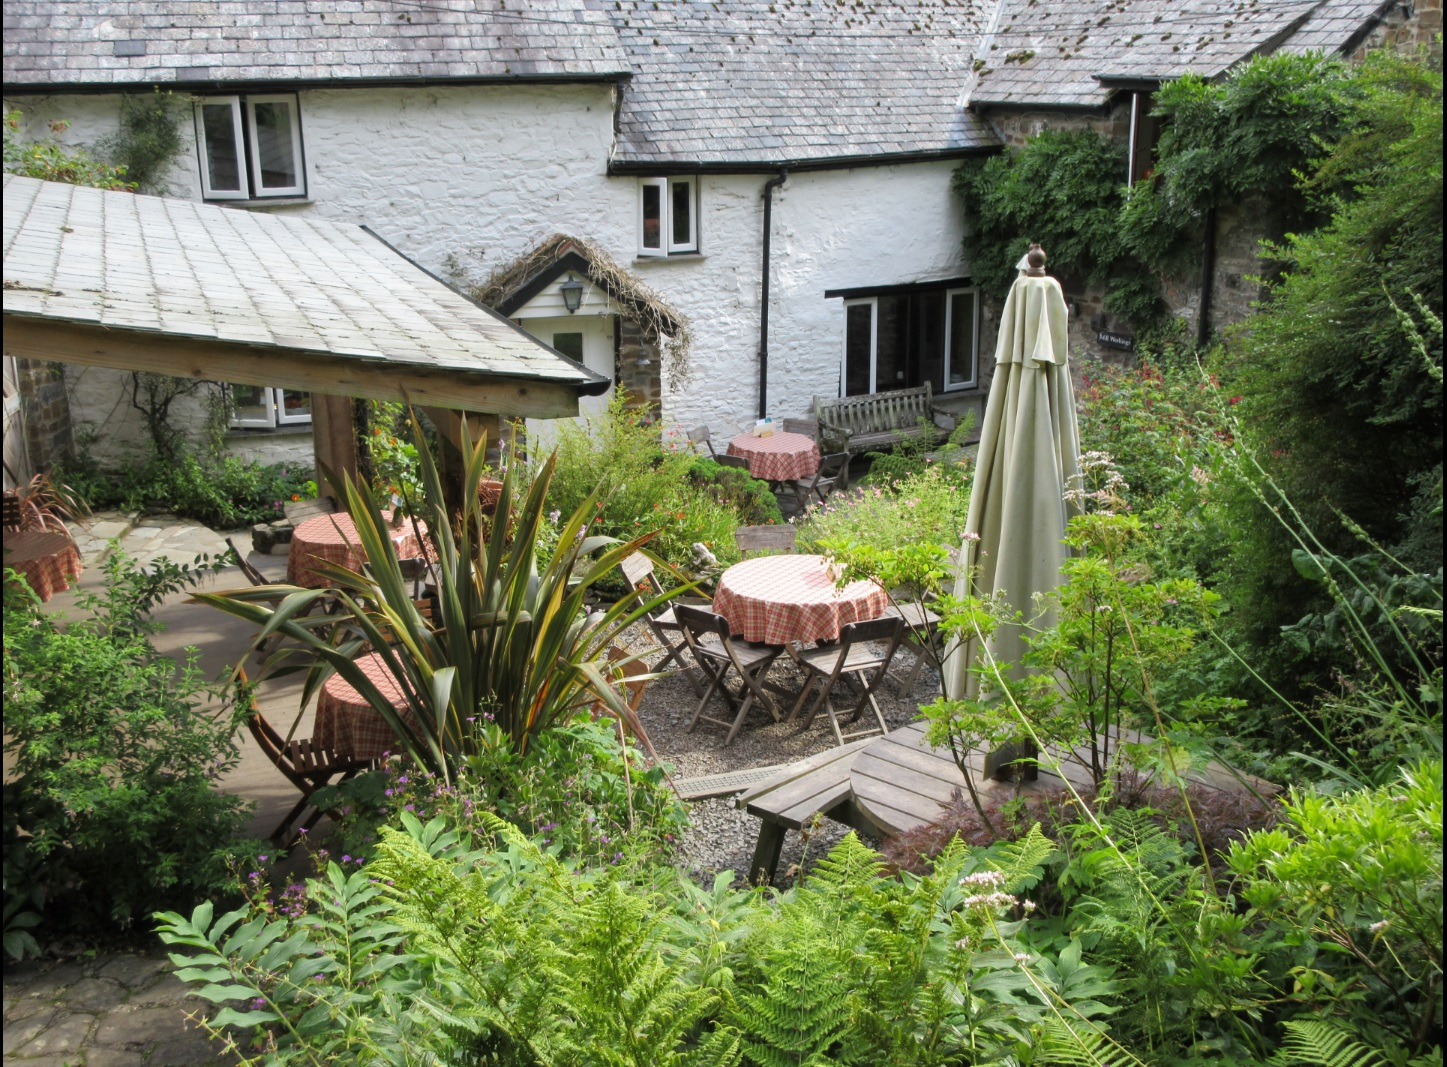 The tea terrace at Docton Mill Gardens and Tearoom, Hartland, North Devon